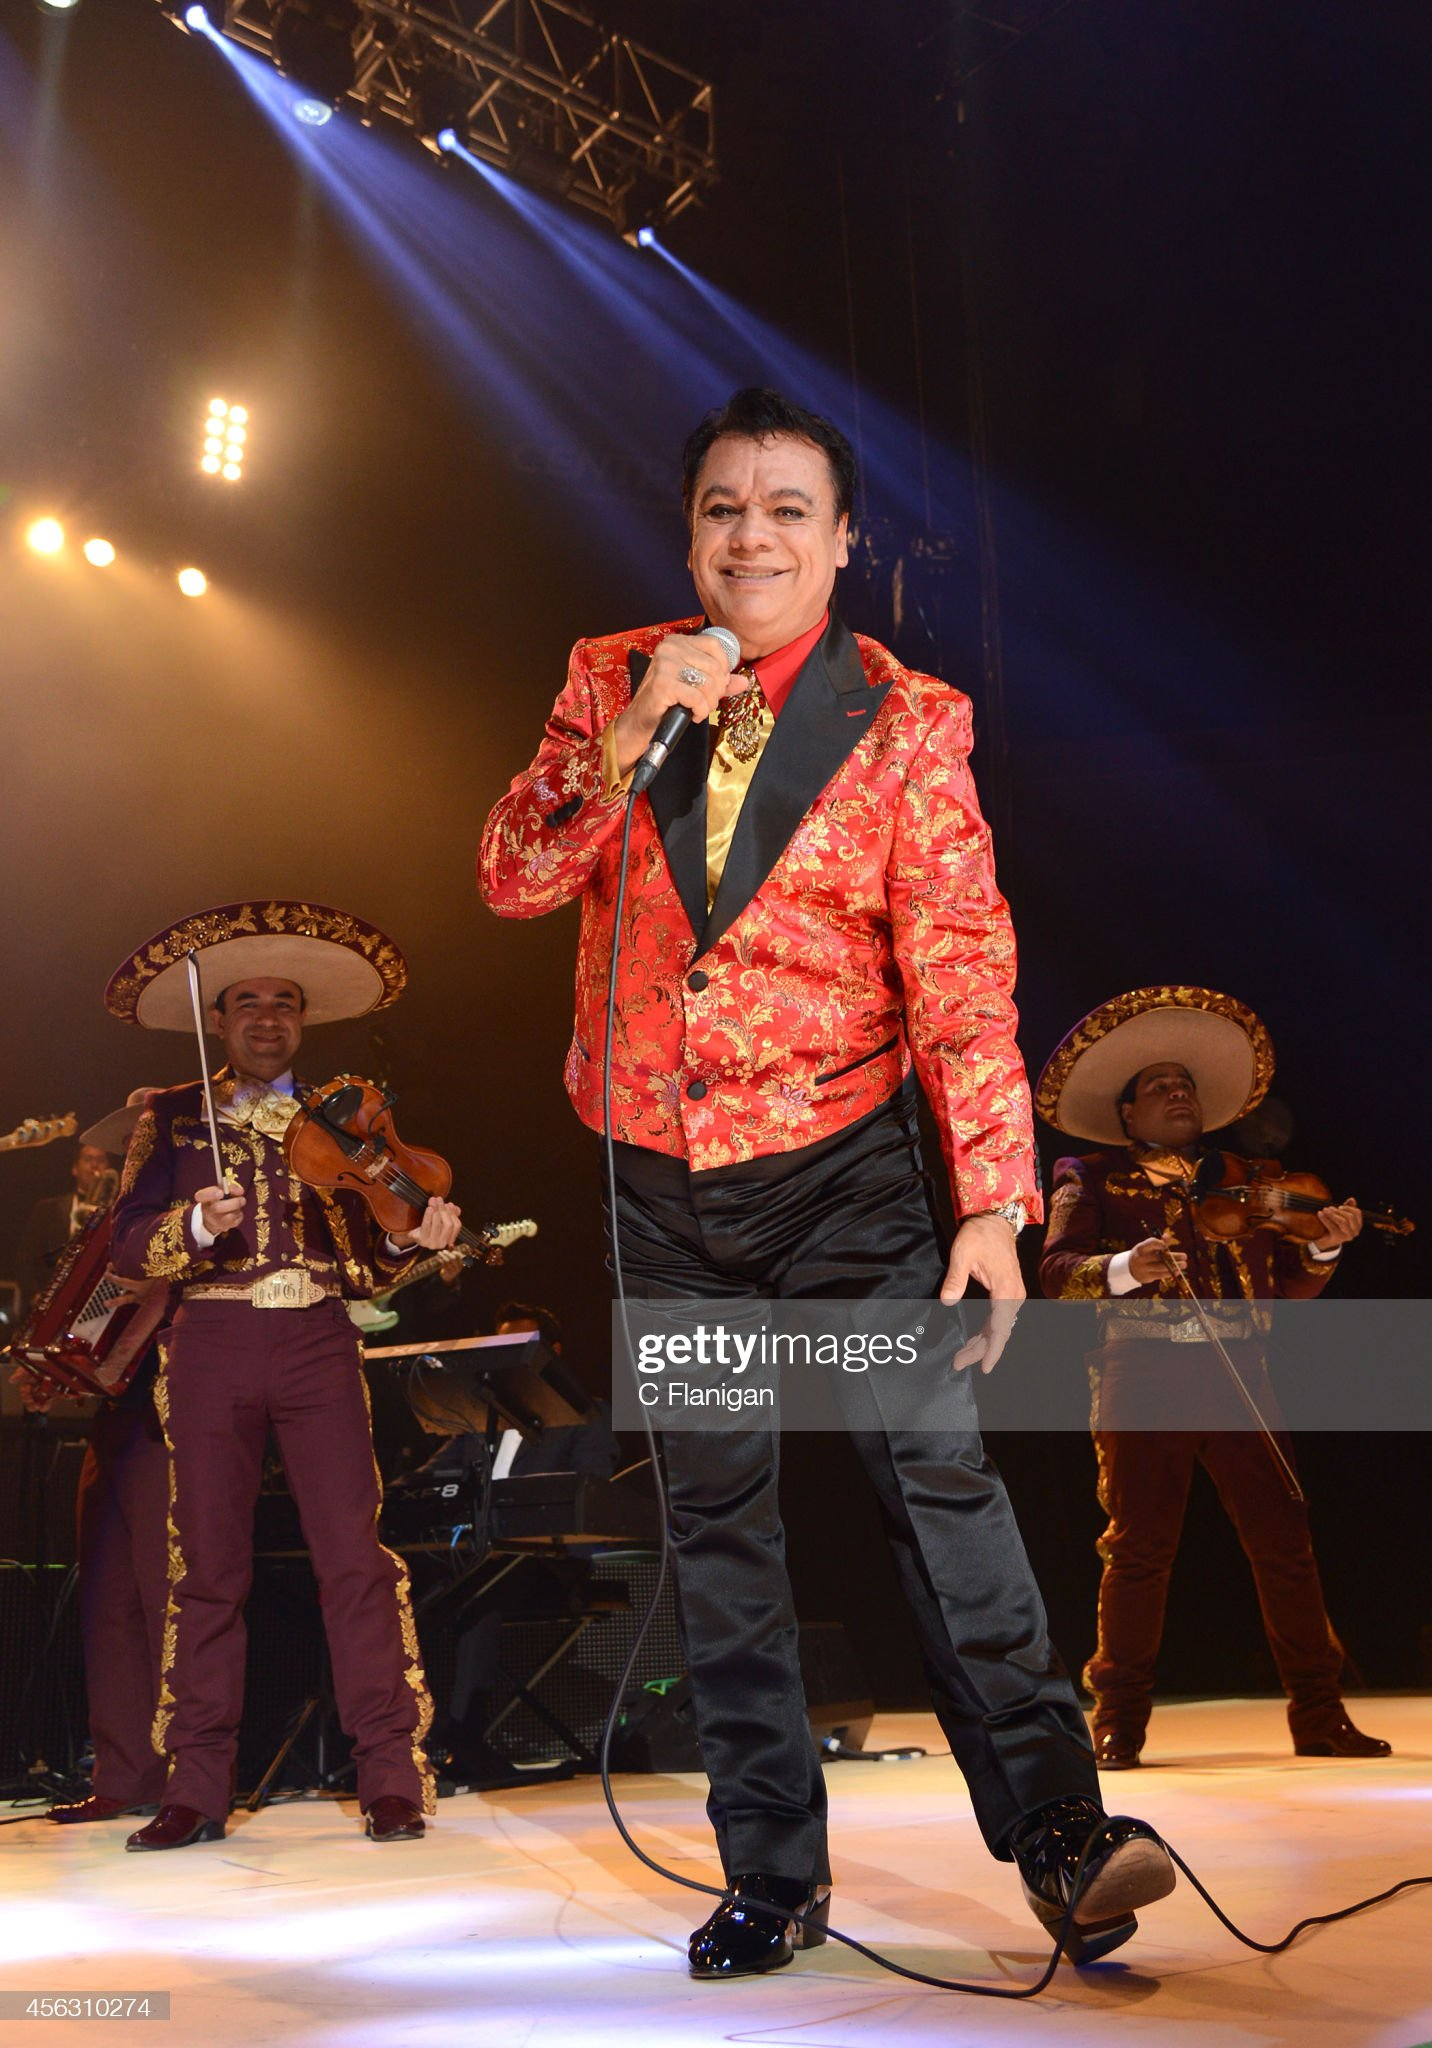 ¿Cuánto mide Juan Gabriel? - Altura - Real height Singer-juan-gabriel-performs-during-his-volver-tour-2014-on-september-picture-id456310274?s=2048x2048